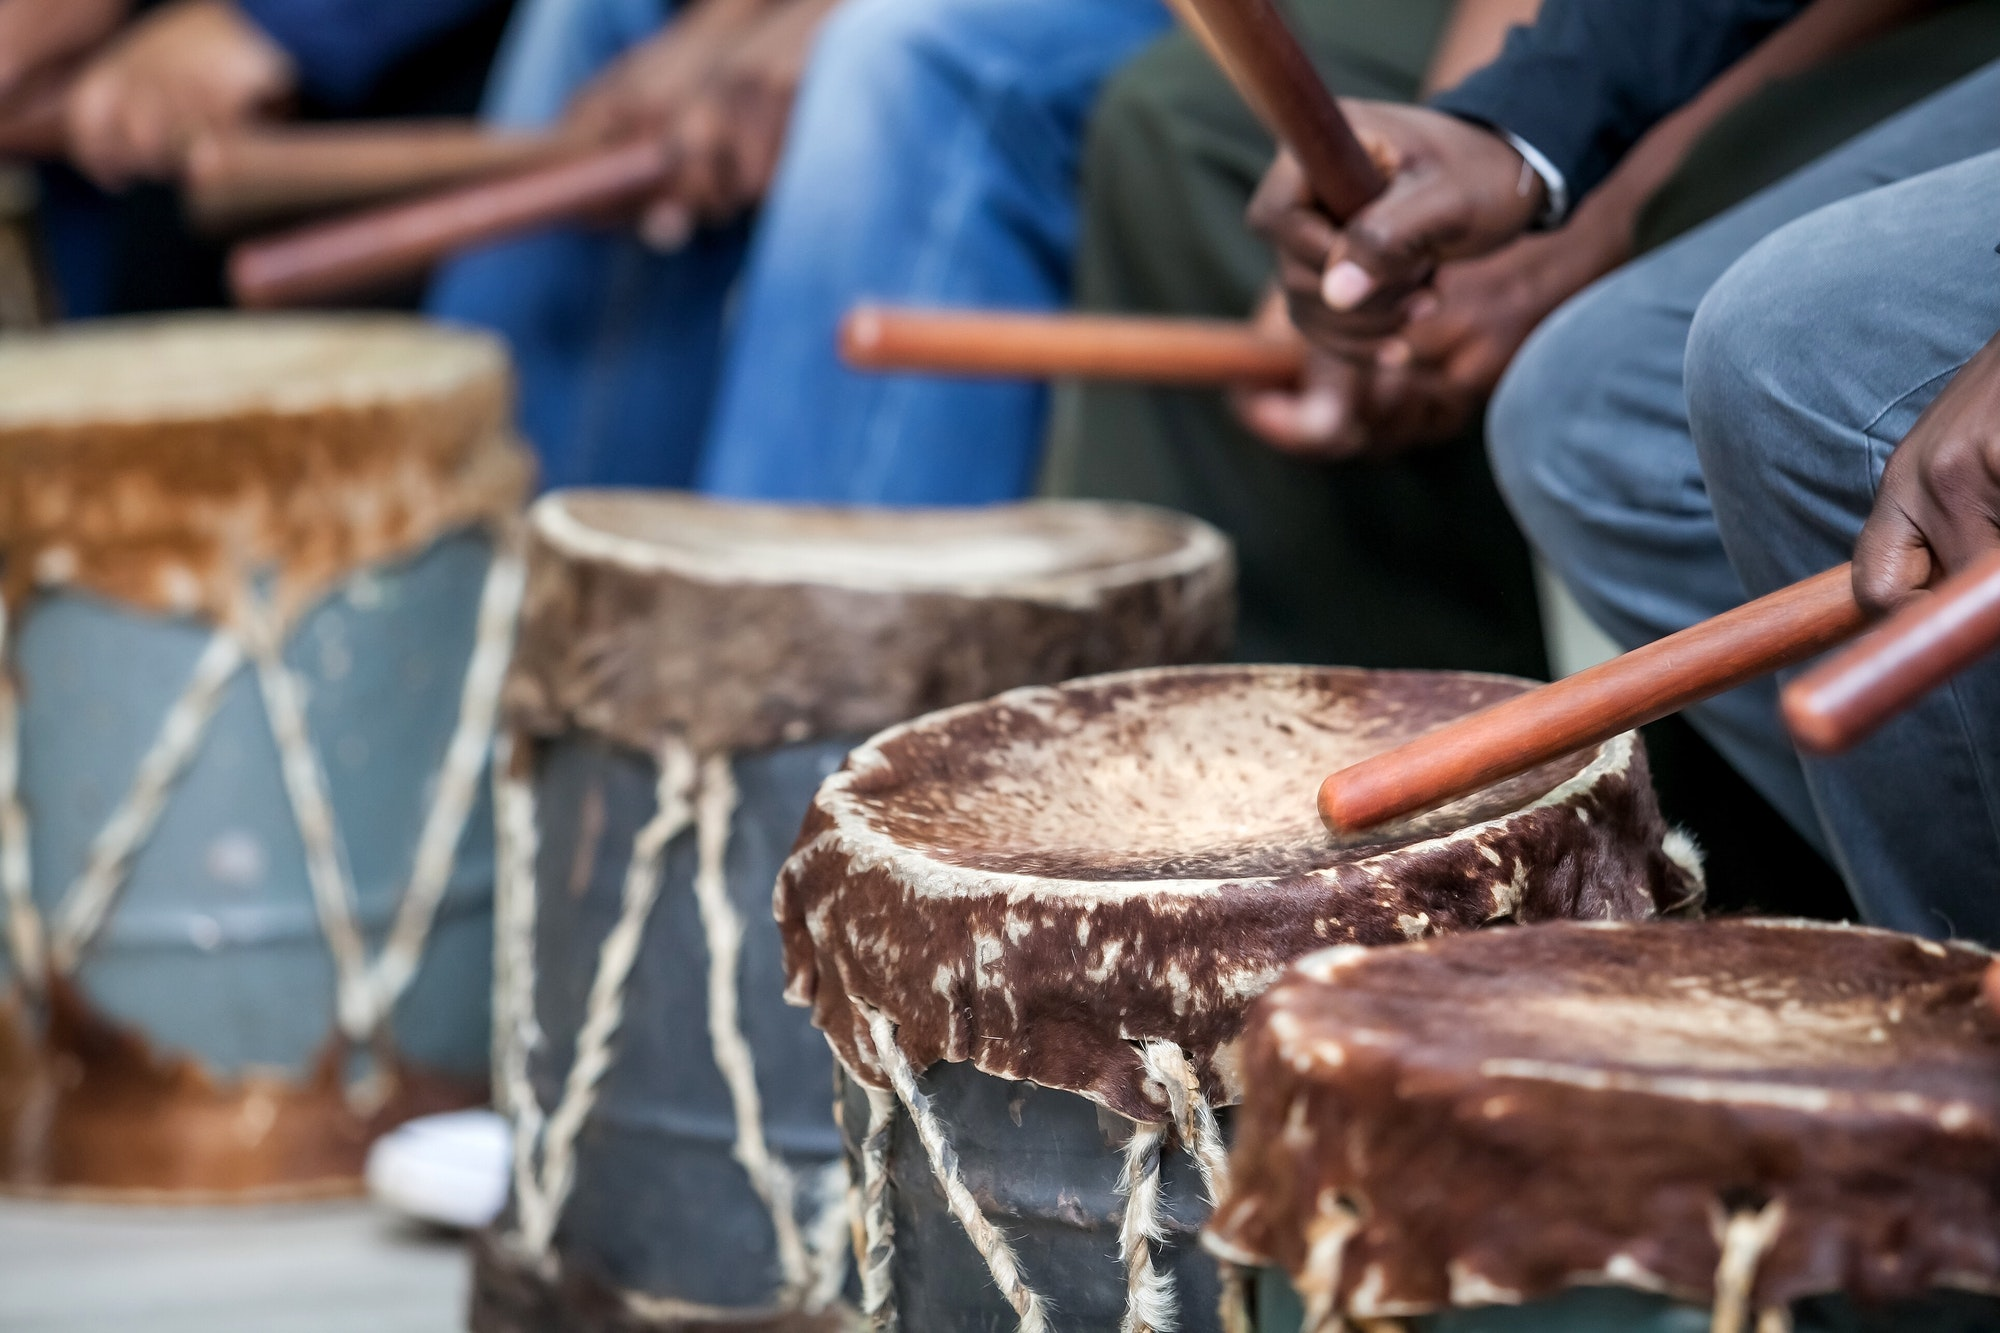 Drums being played with drum sticks. African Djembe drums